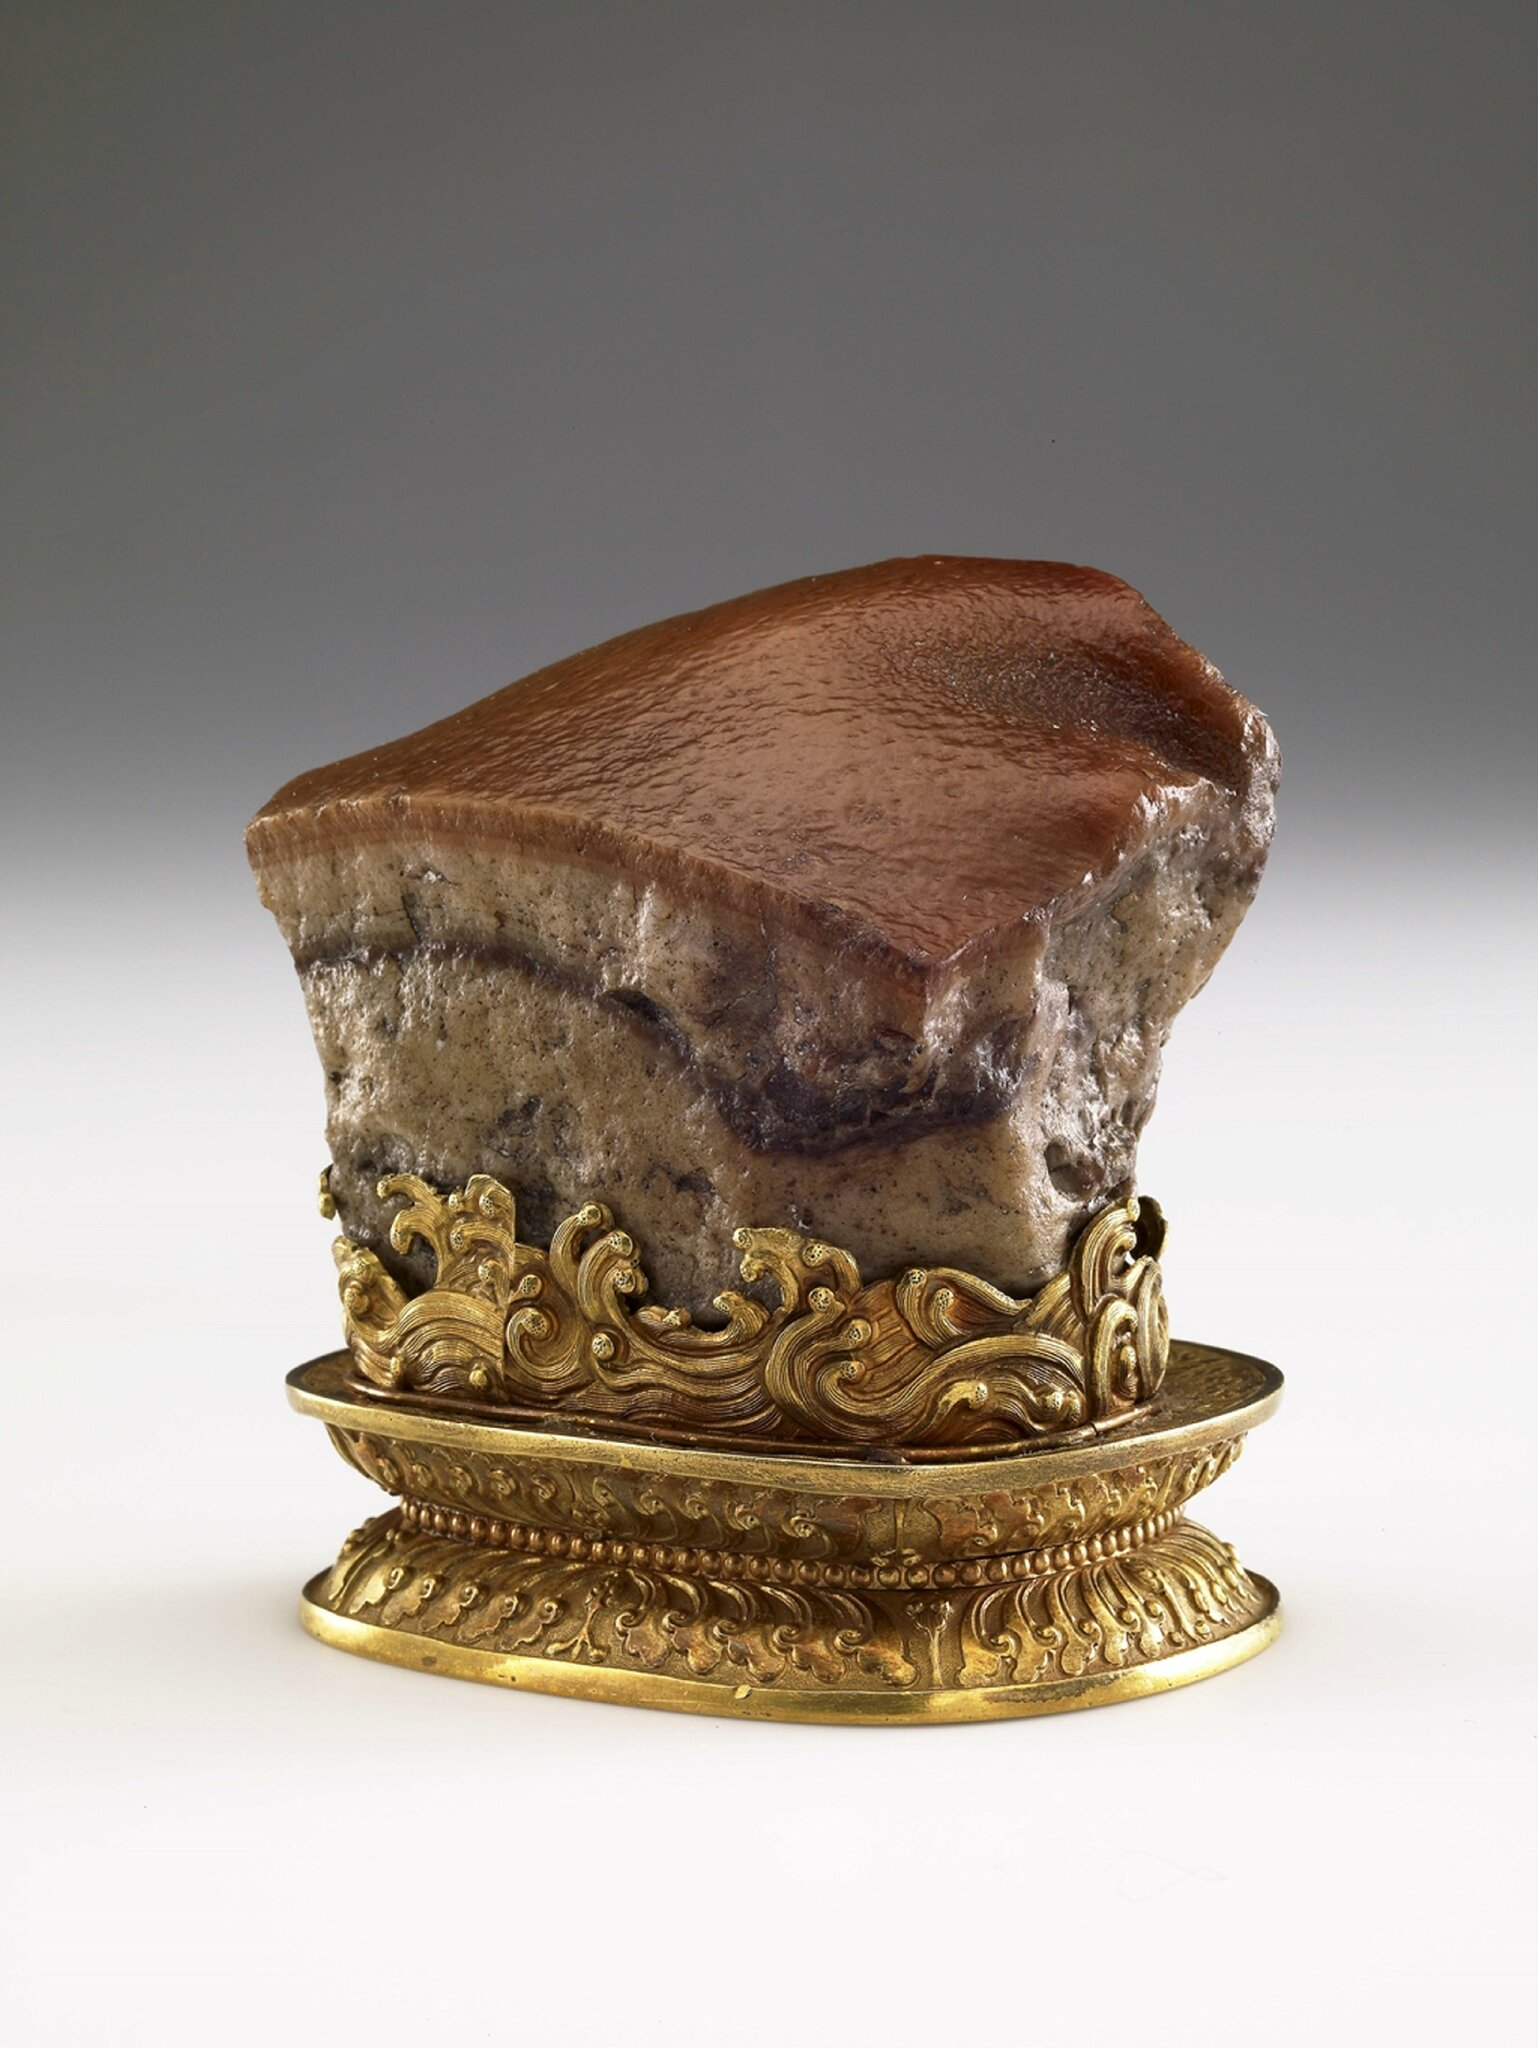 Artworks fit for kings make their North American debut at the Asian Art Museum of San Francisco